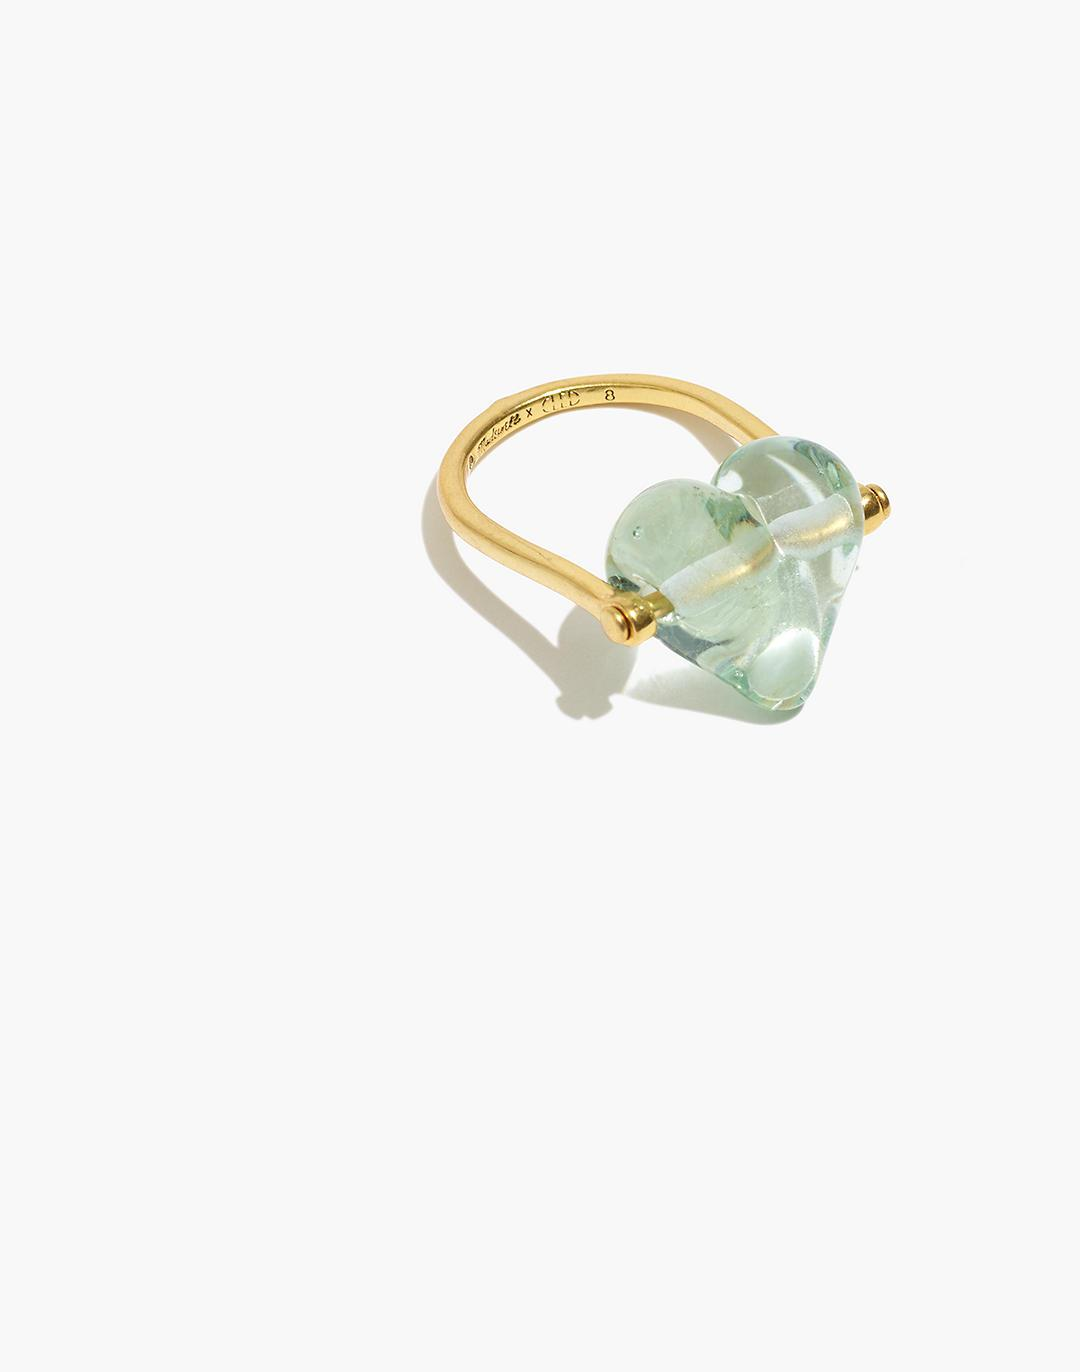 Madewell x CLED® Upcycled Glass Heart Ring